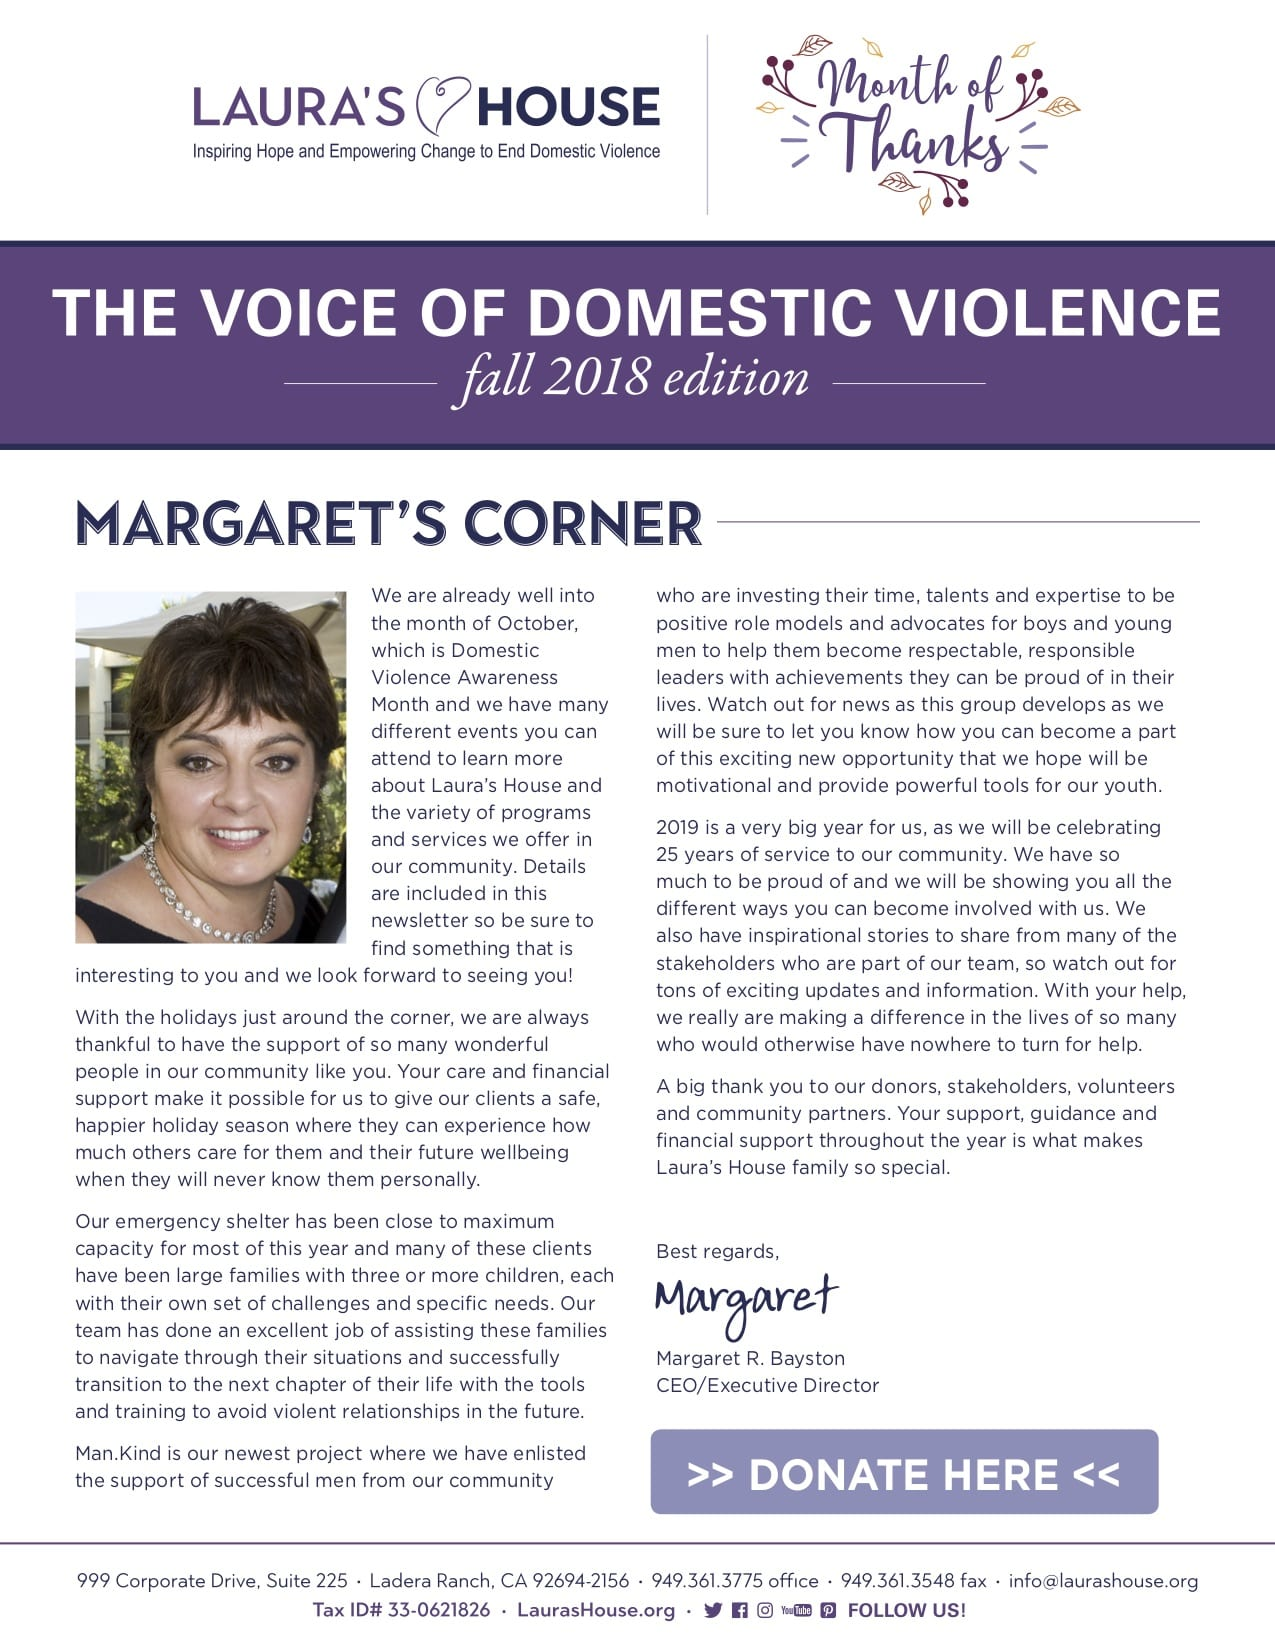 The Voice of Domestic Violence - Fall 2018 edition